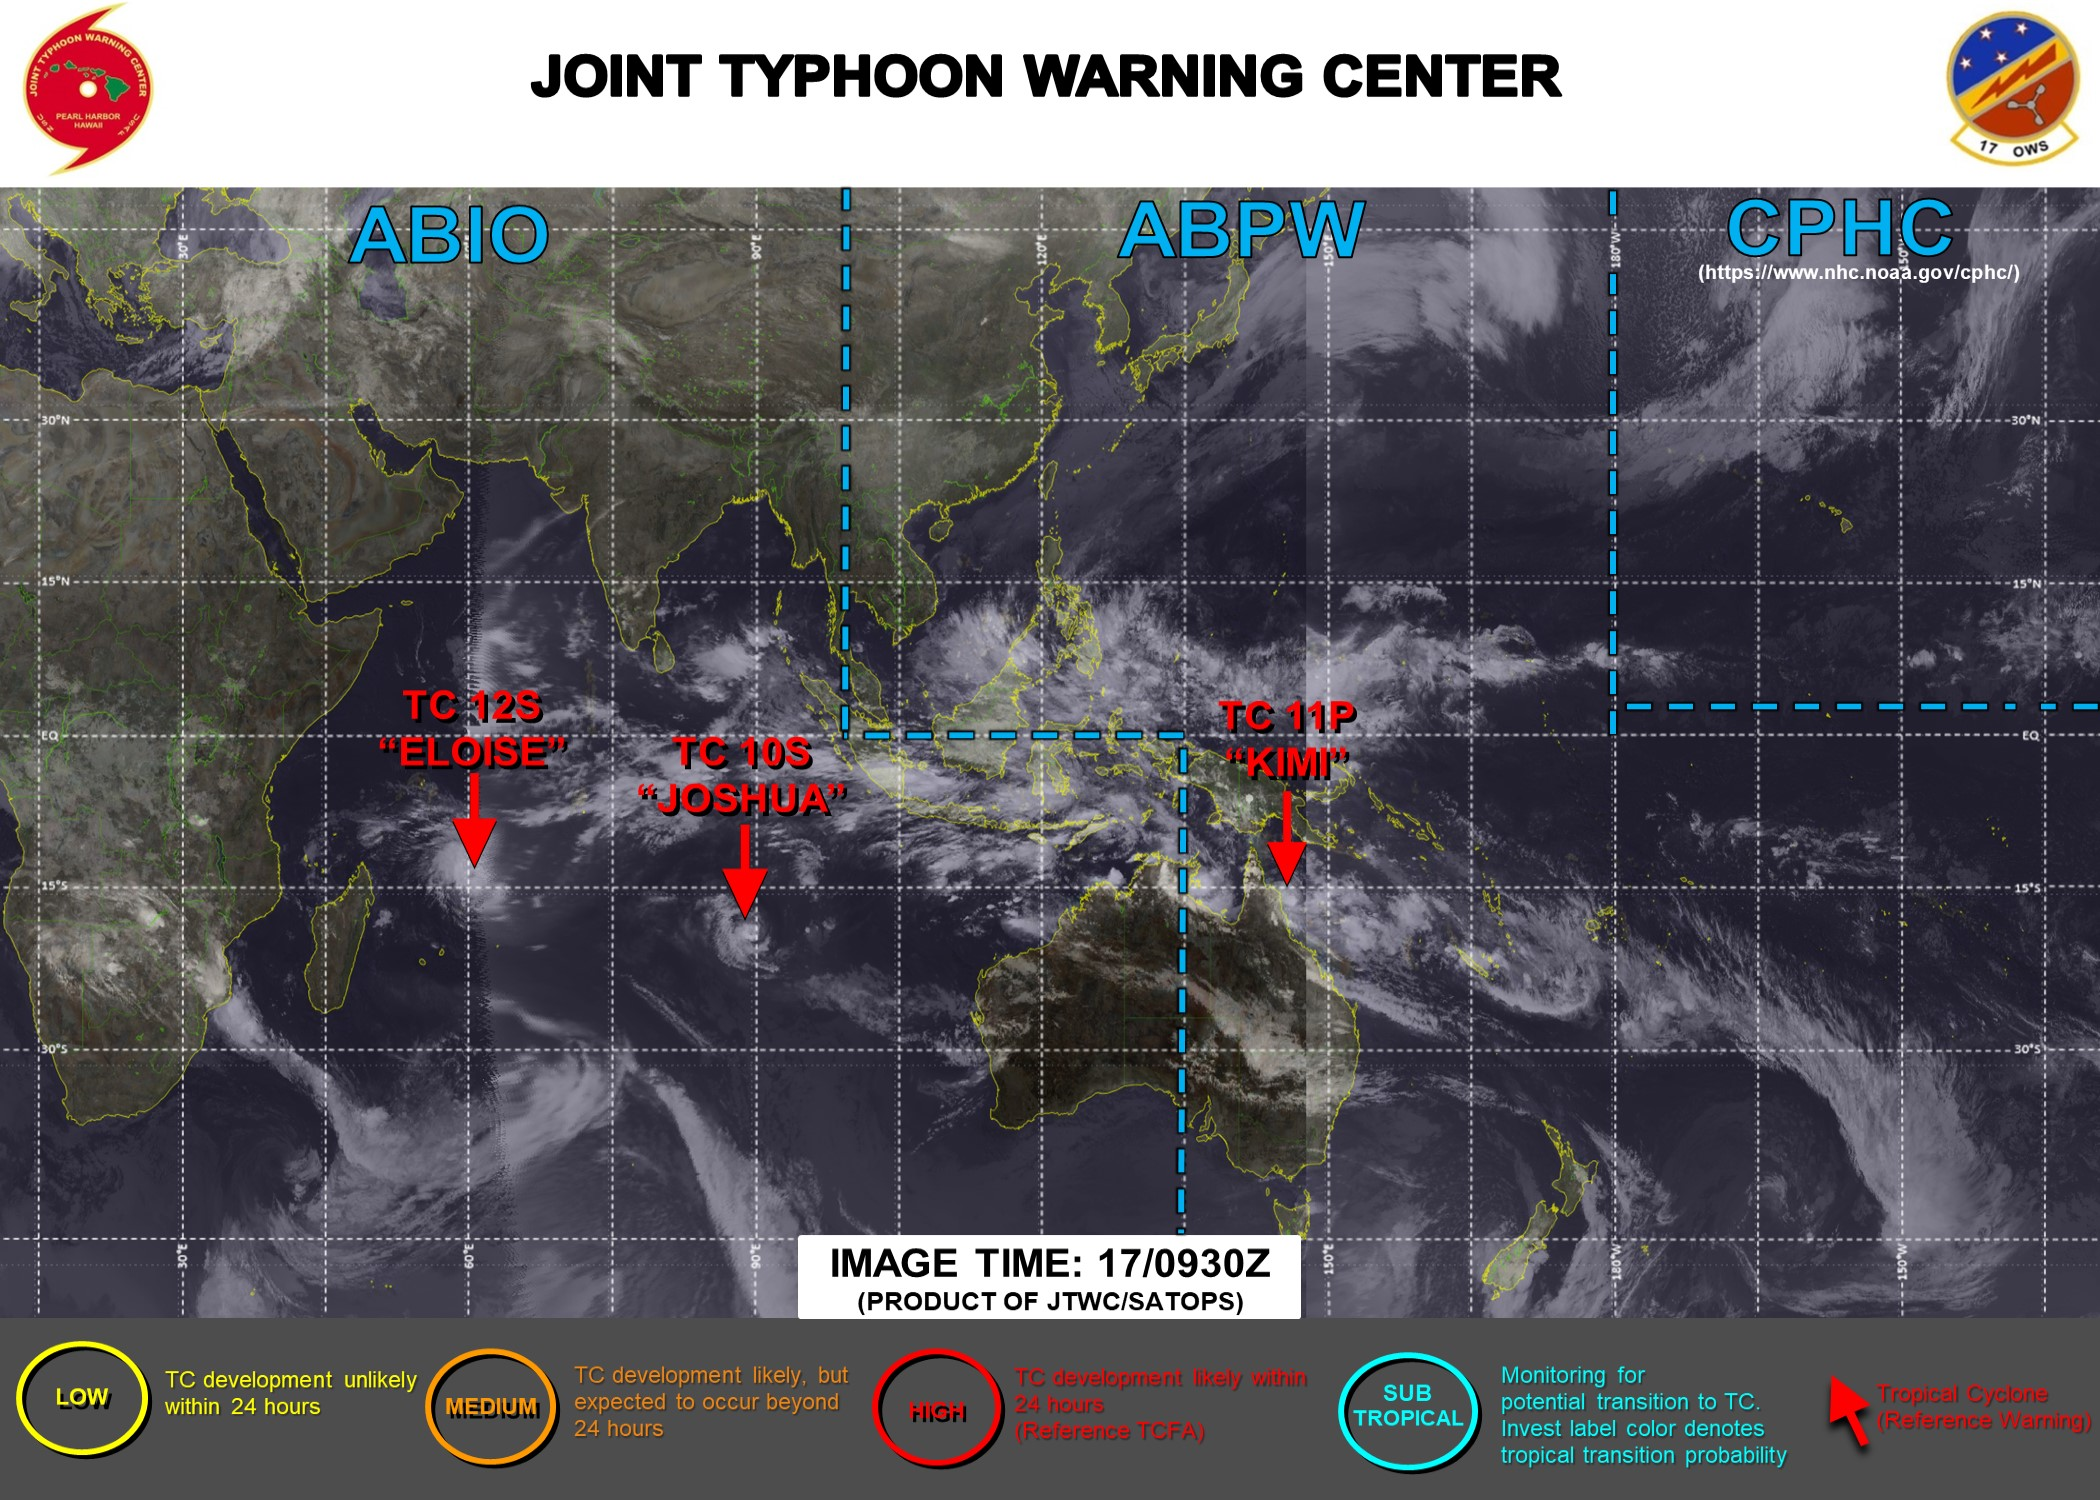 THE JTWC IS ISSUING 12HOURLY WARNINGS ON 10S(JOSHUA) AND 12S(ELOISE) AND 6HOURLY WARNINGS ON 11P(KIMI). 3HOURLY SATELLITE BULLETINS ARE PROVIDED FOR THE 3 SYSTEMS.